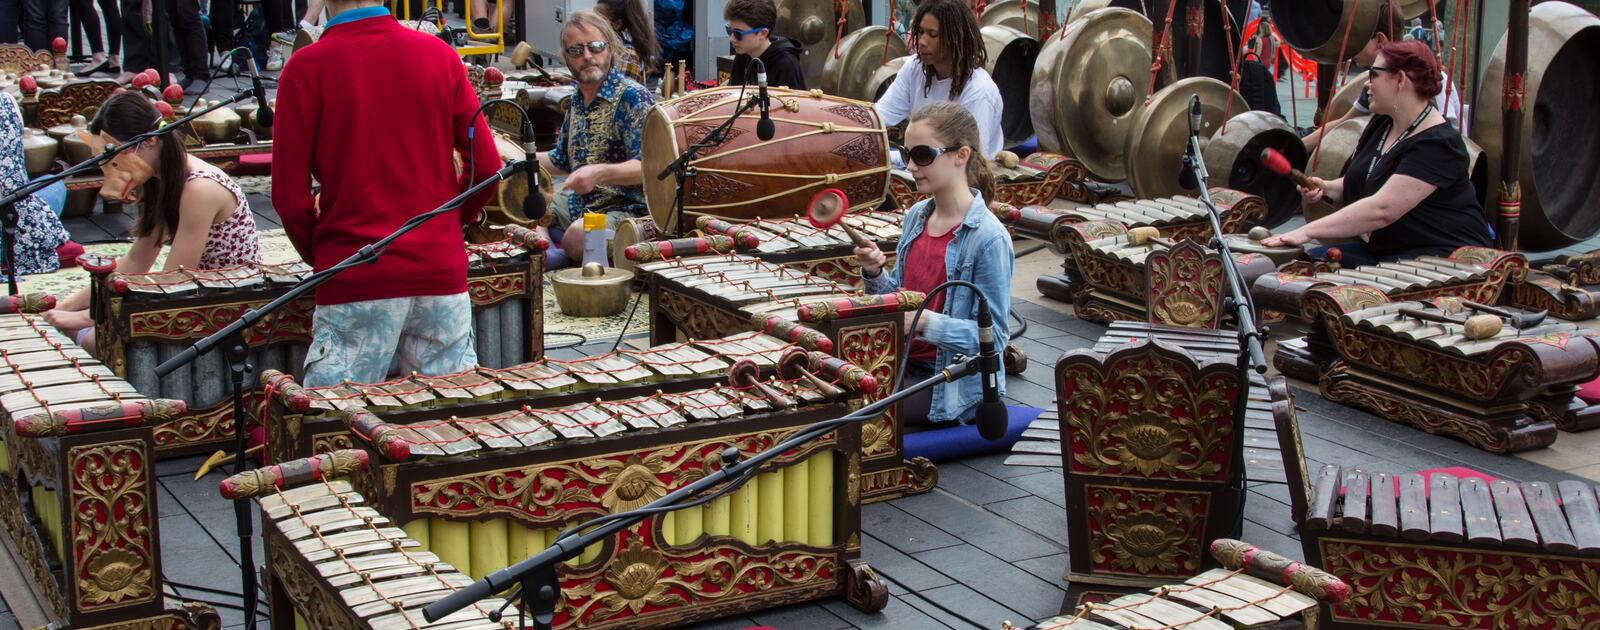 From Festival of Love Gamelan Showcase, 9 July 2016.